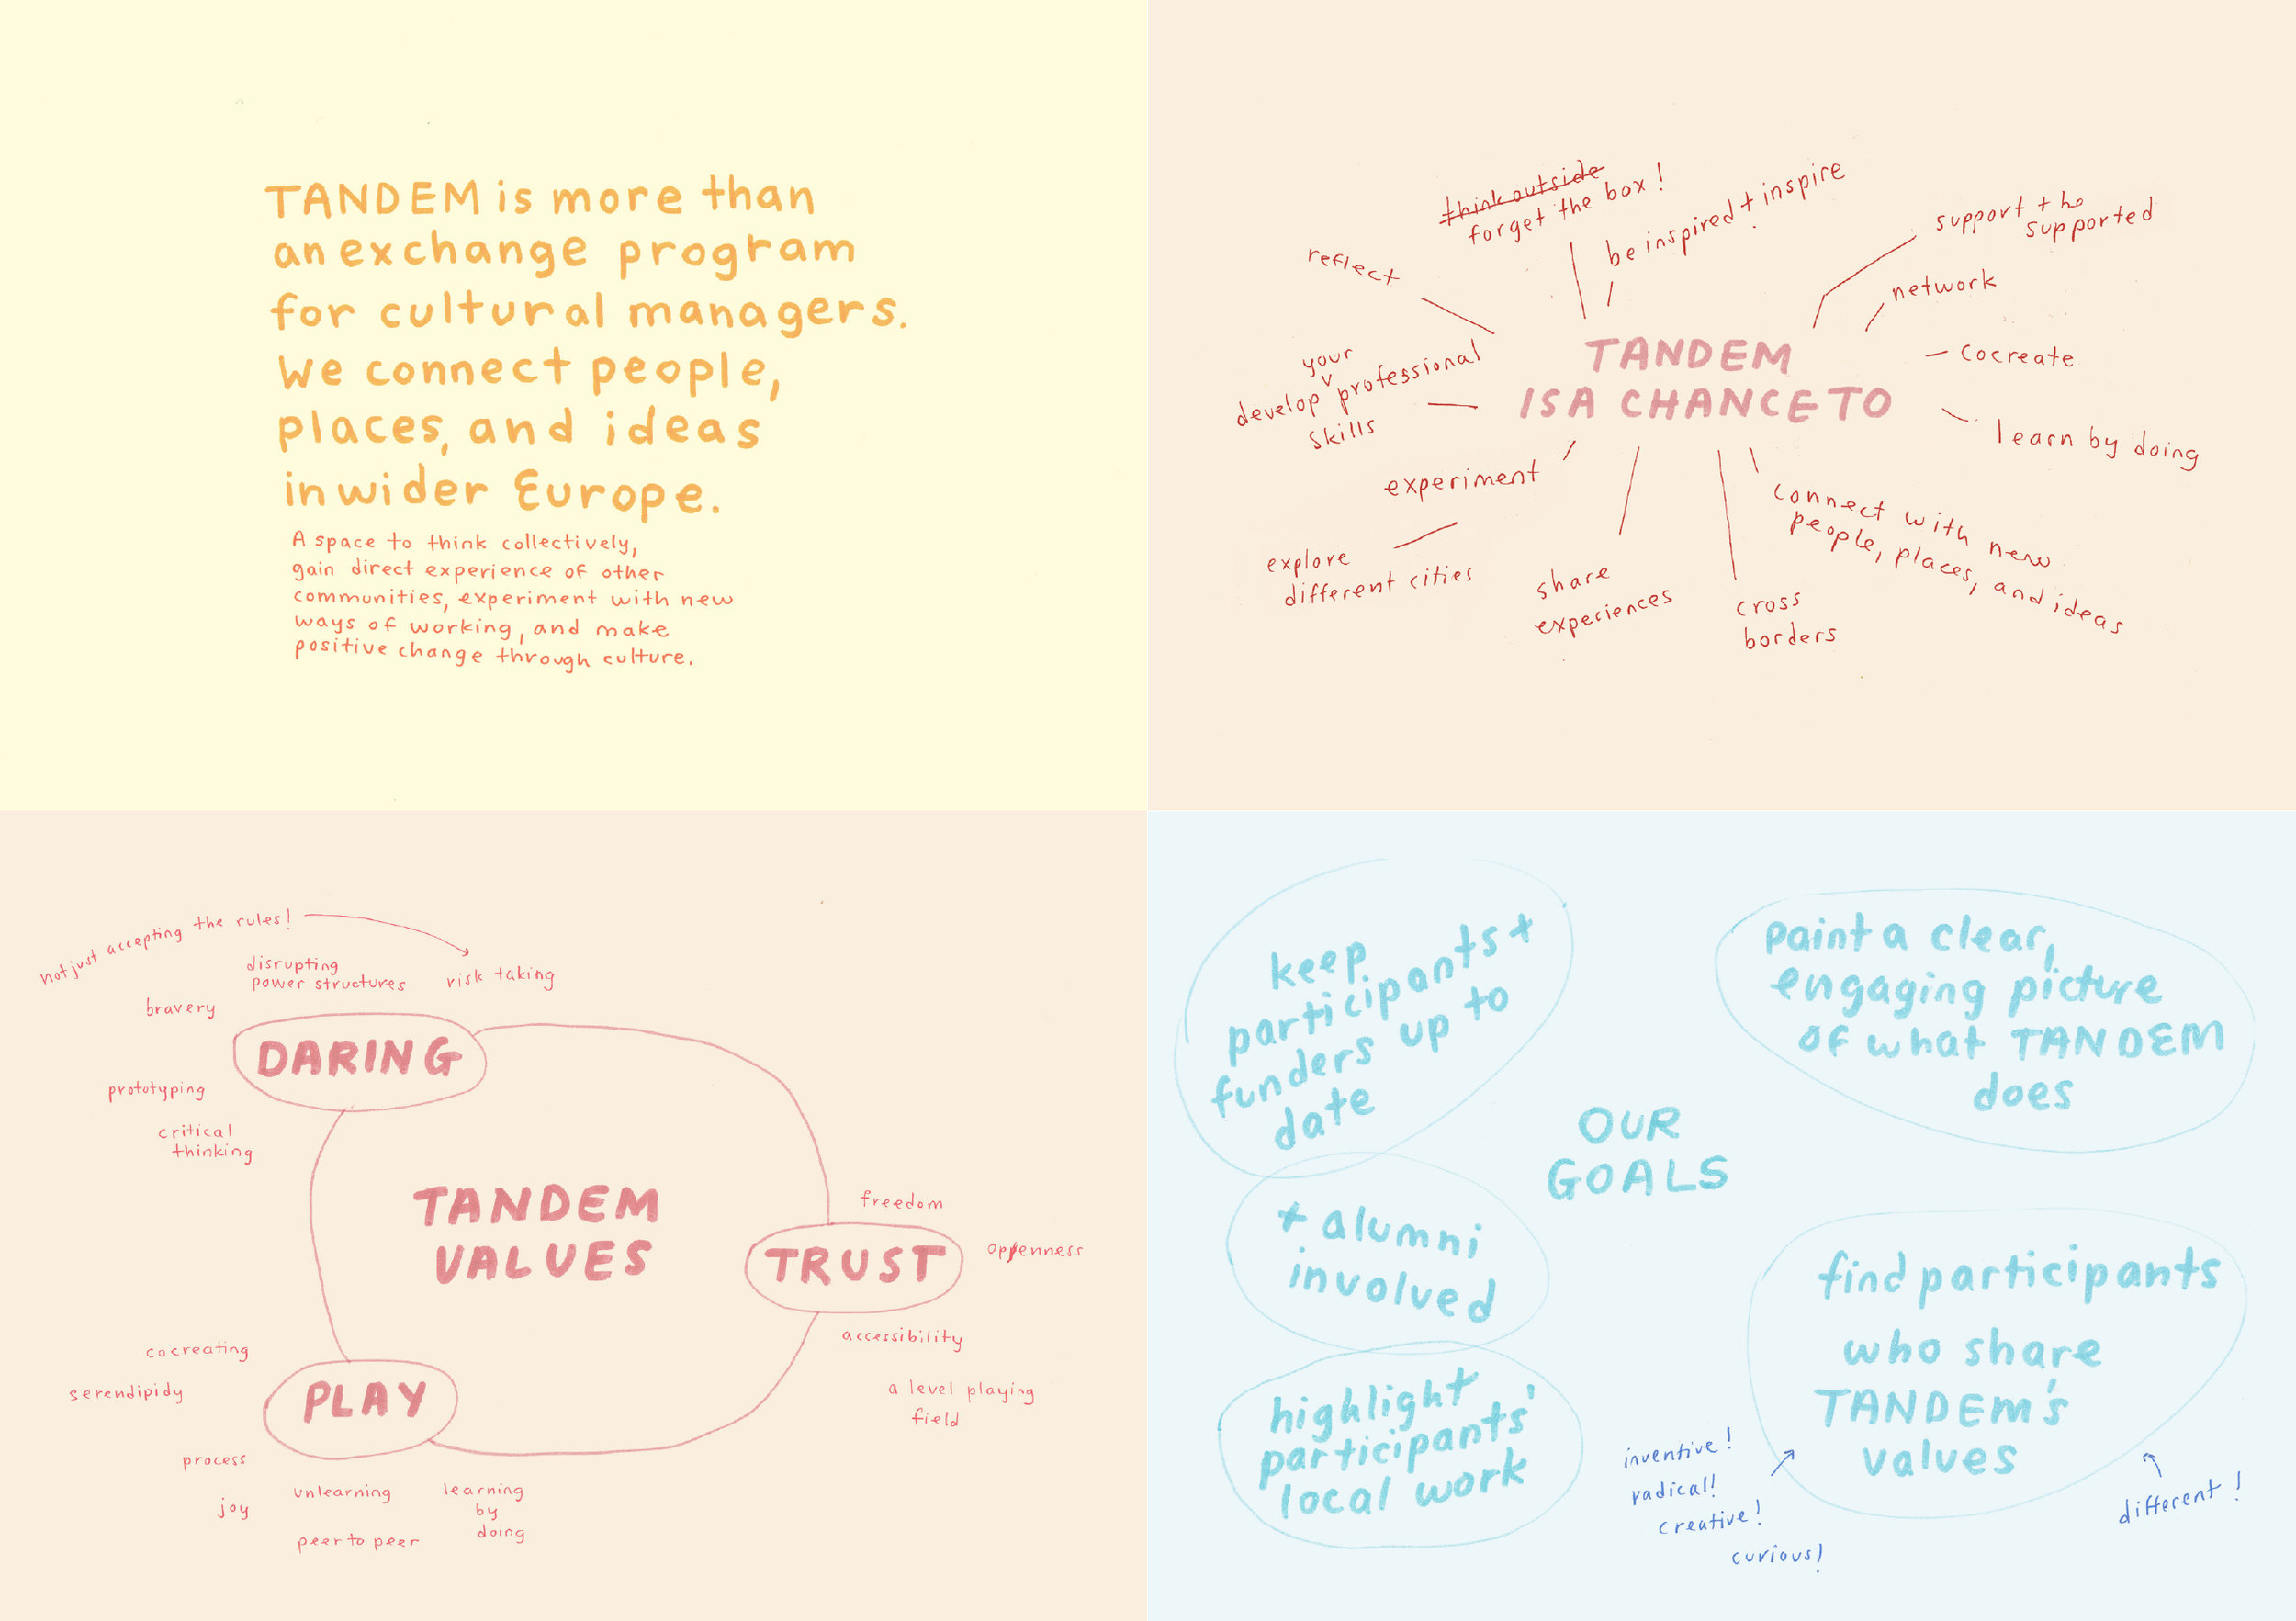 Analysis - Through group brainstorming, perspective development, pattern recognition, and key insights, we generated a strategy for communicating Tandem's mission and values. I produced a visual project planning toolkit defining the vision and priorities.